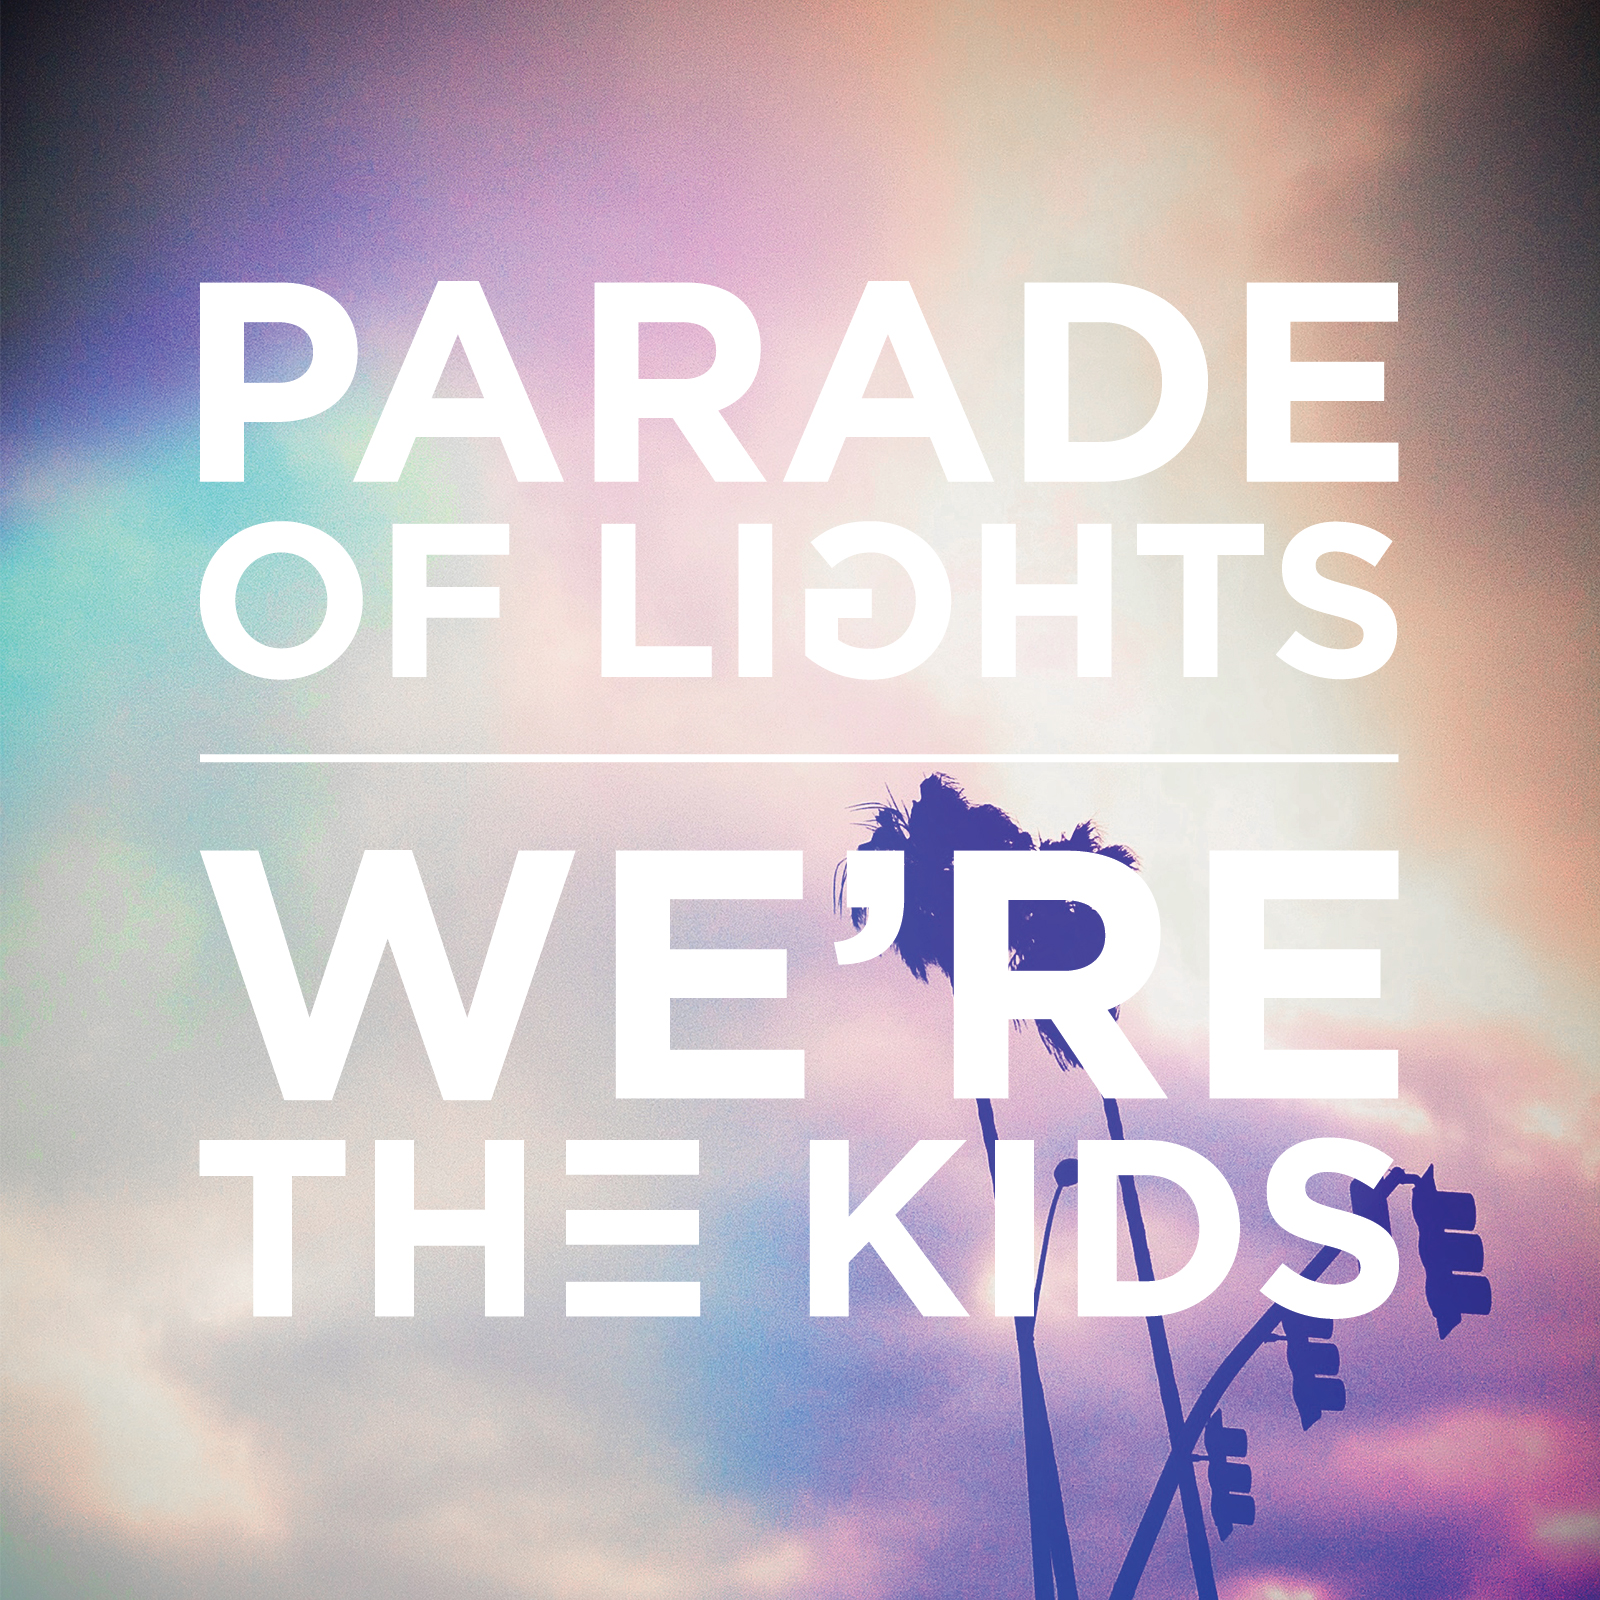 Parade of Lights Review: Parade of Yikes by Jessica Keast